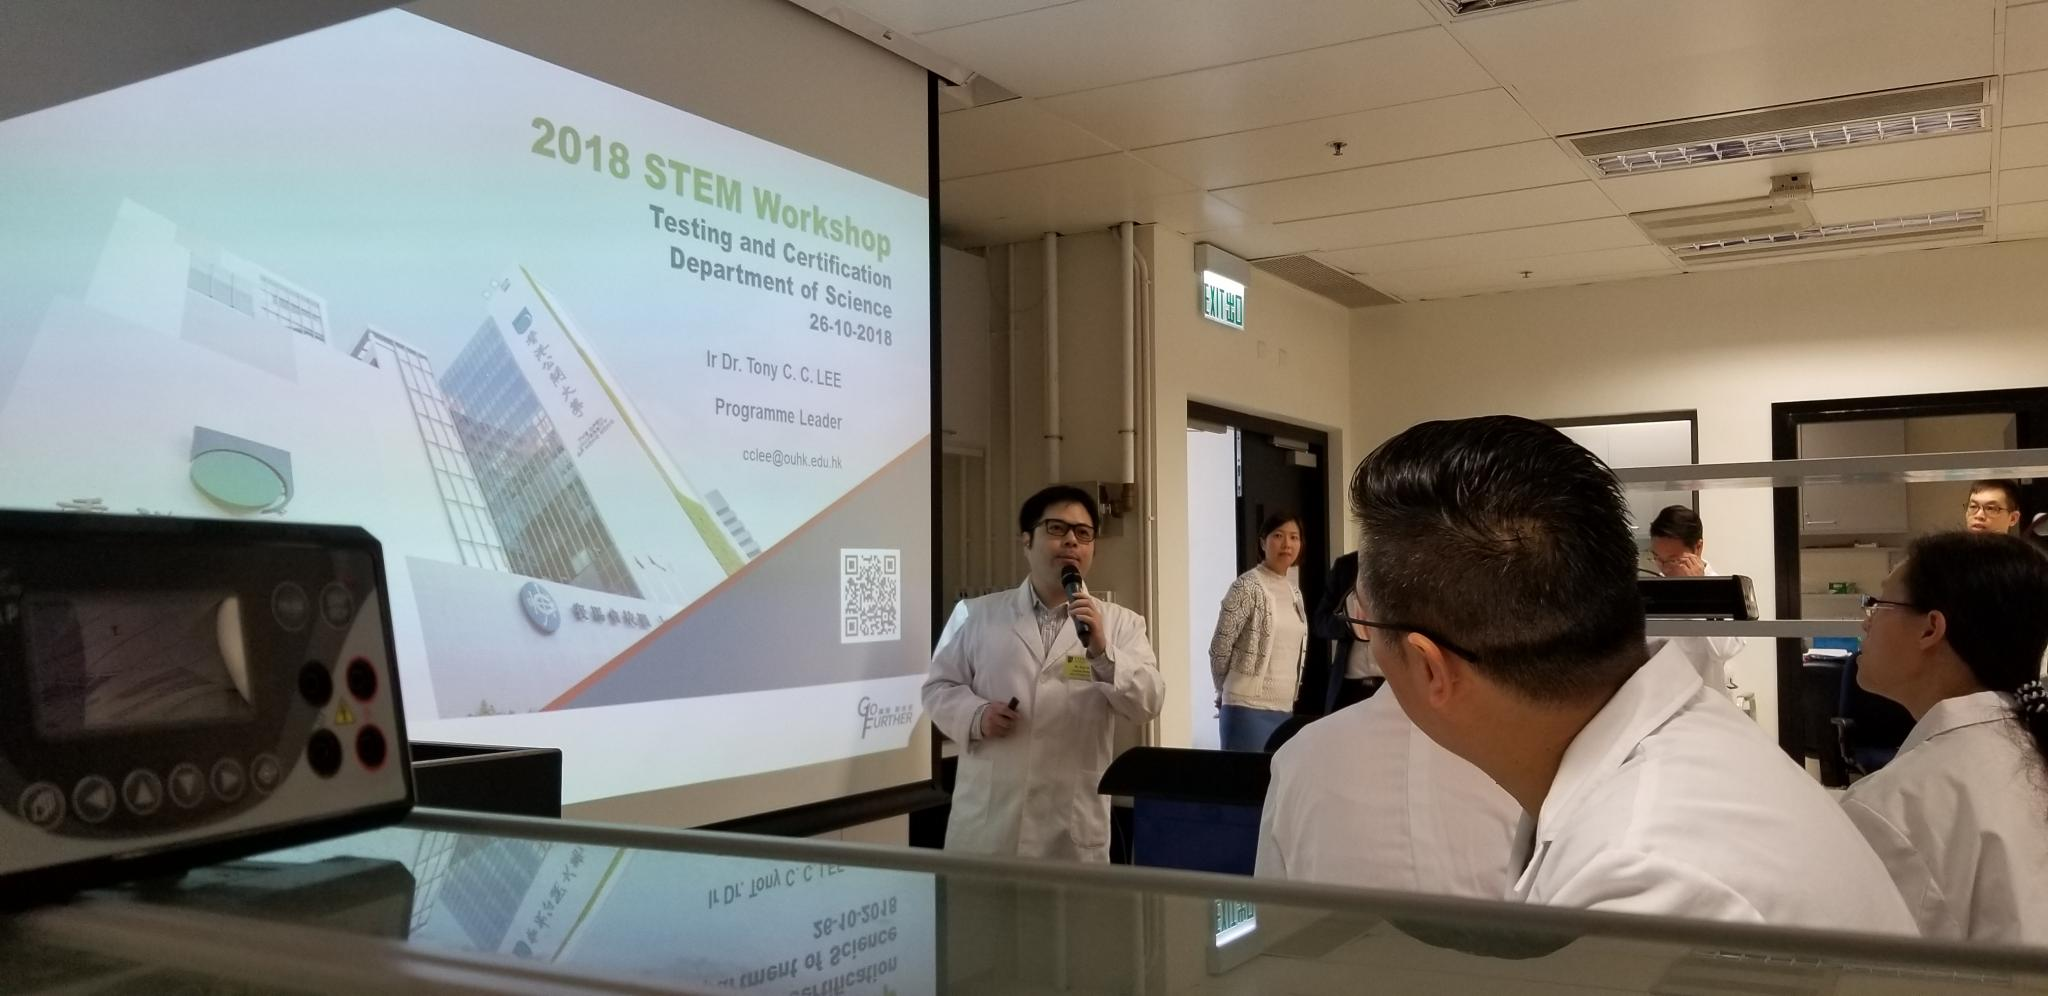 Our teachers were concentrated on the introduction of the STEM workshop (Biotechnology concentration). They were listening very carefully about the procedures and the principles behind the DNA experiment.